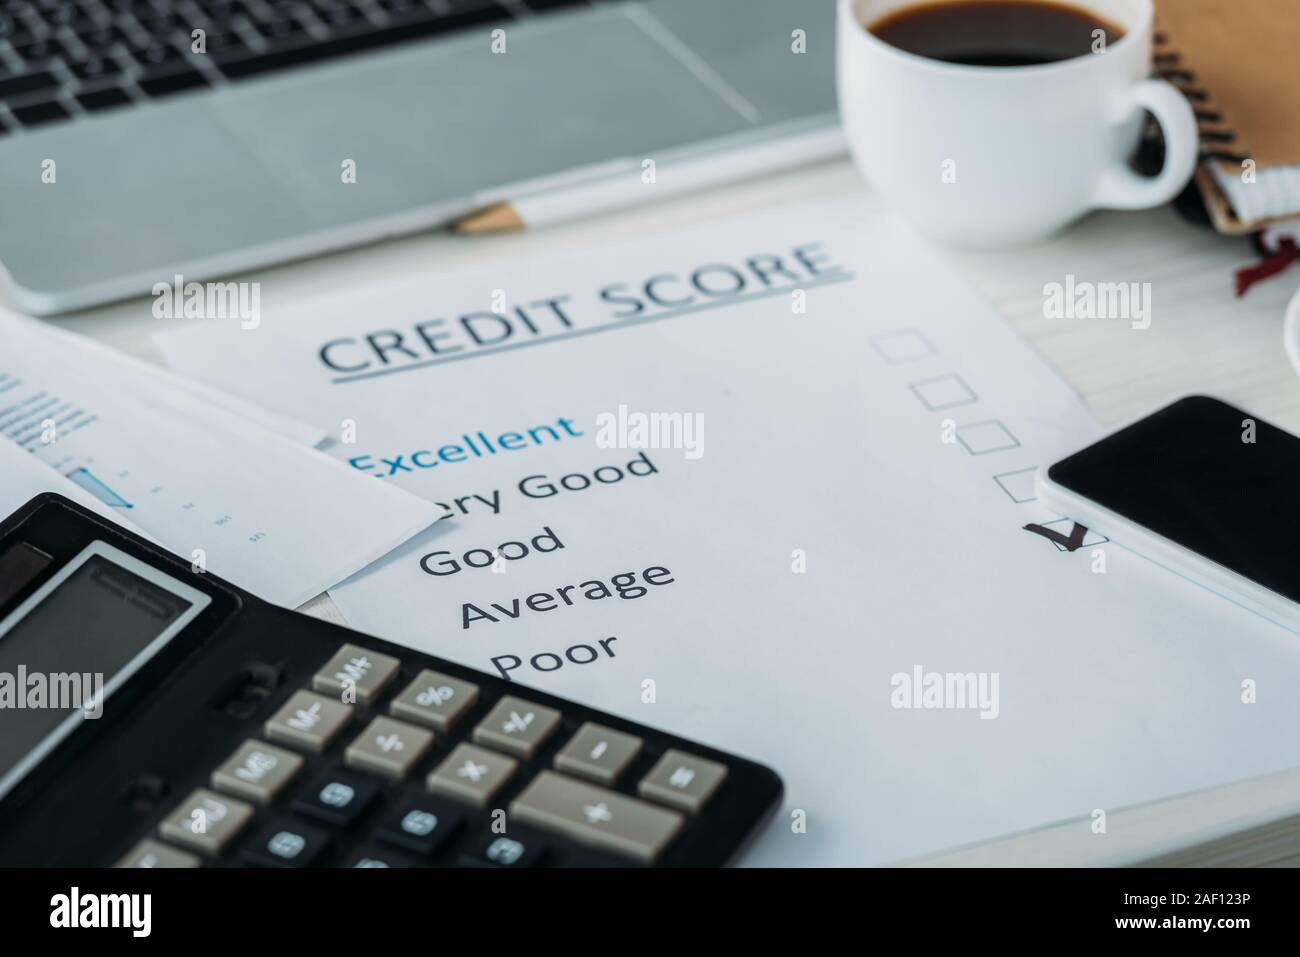 Selective Focus Of Smartphone Cup With Coffee Calculator Laptop And Credit Score Stock Photo Alamy